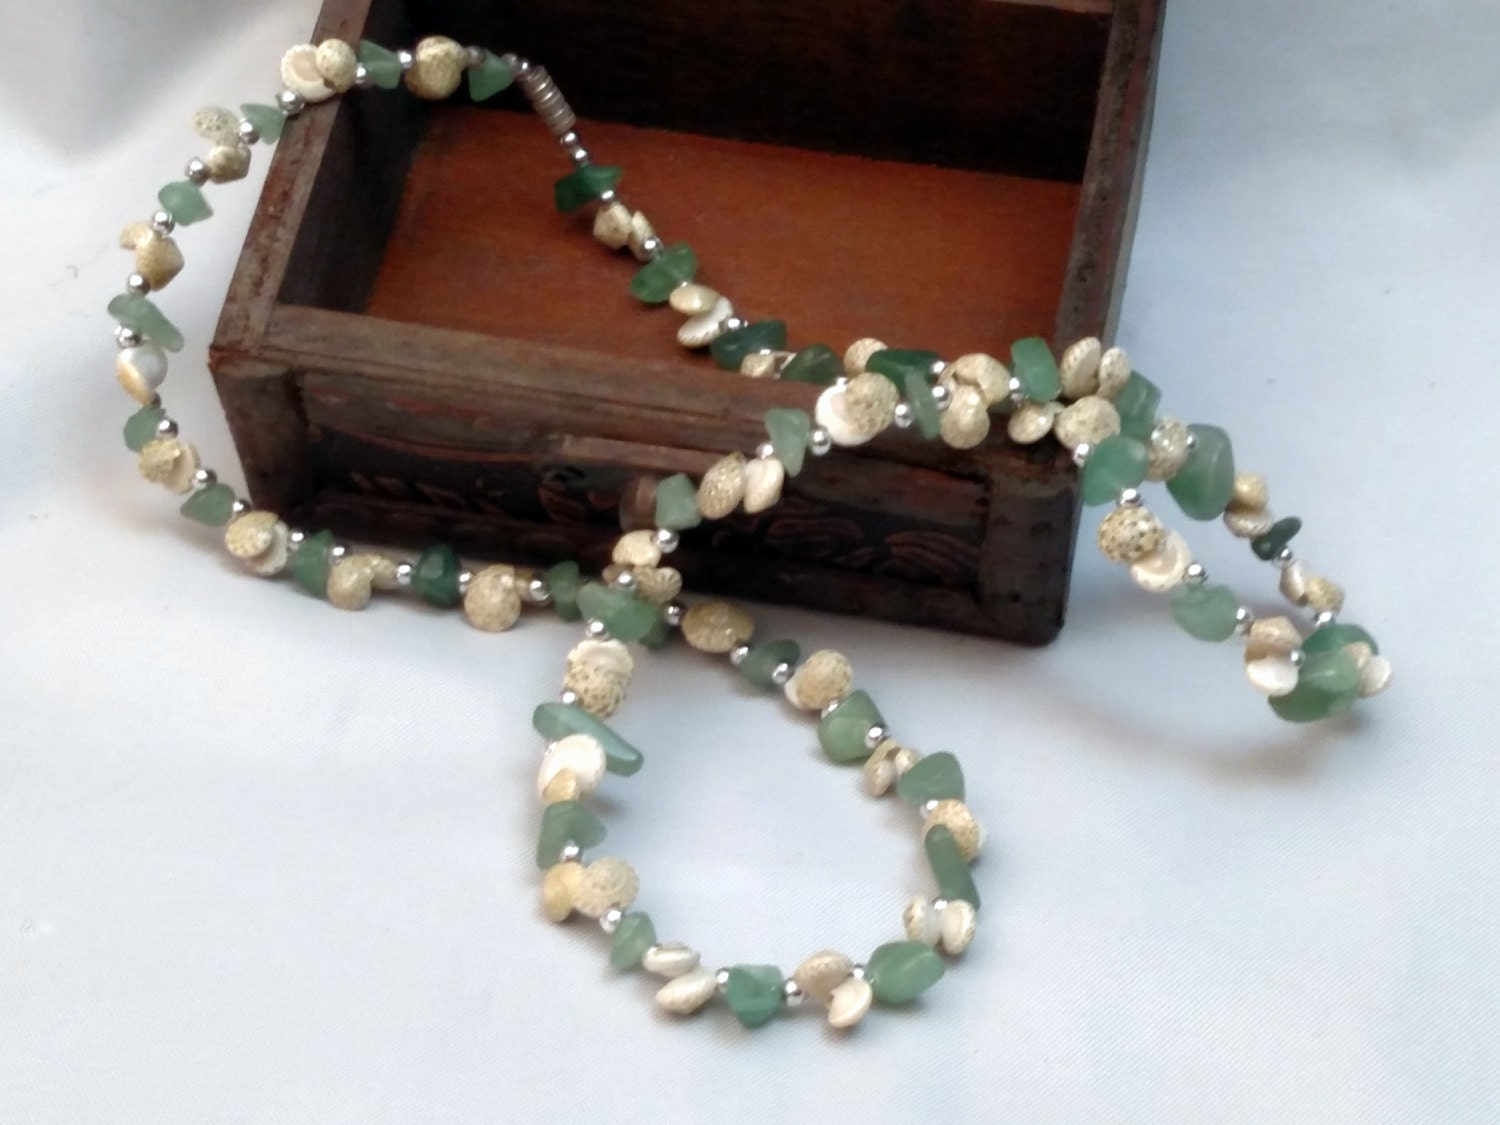 Handmade Seashell and Turquoise Beaded Necklace from Antigua